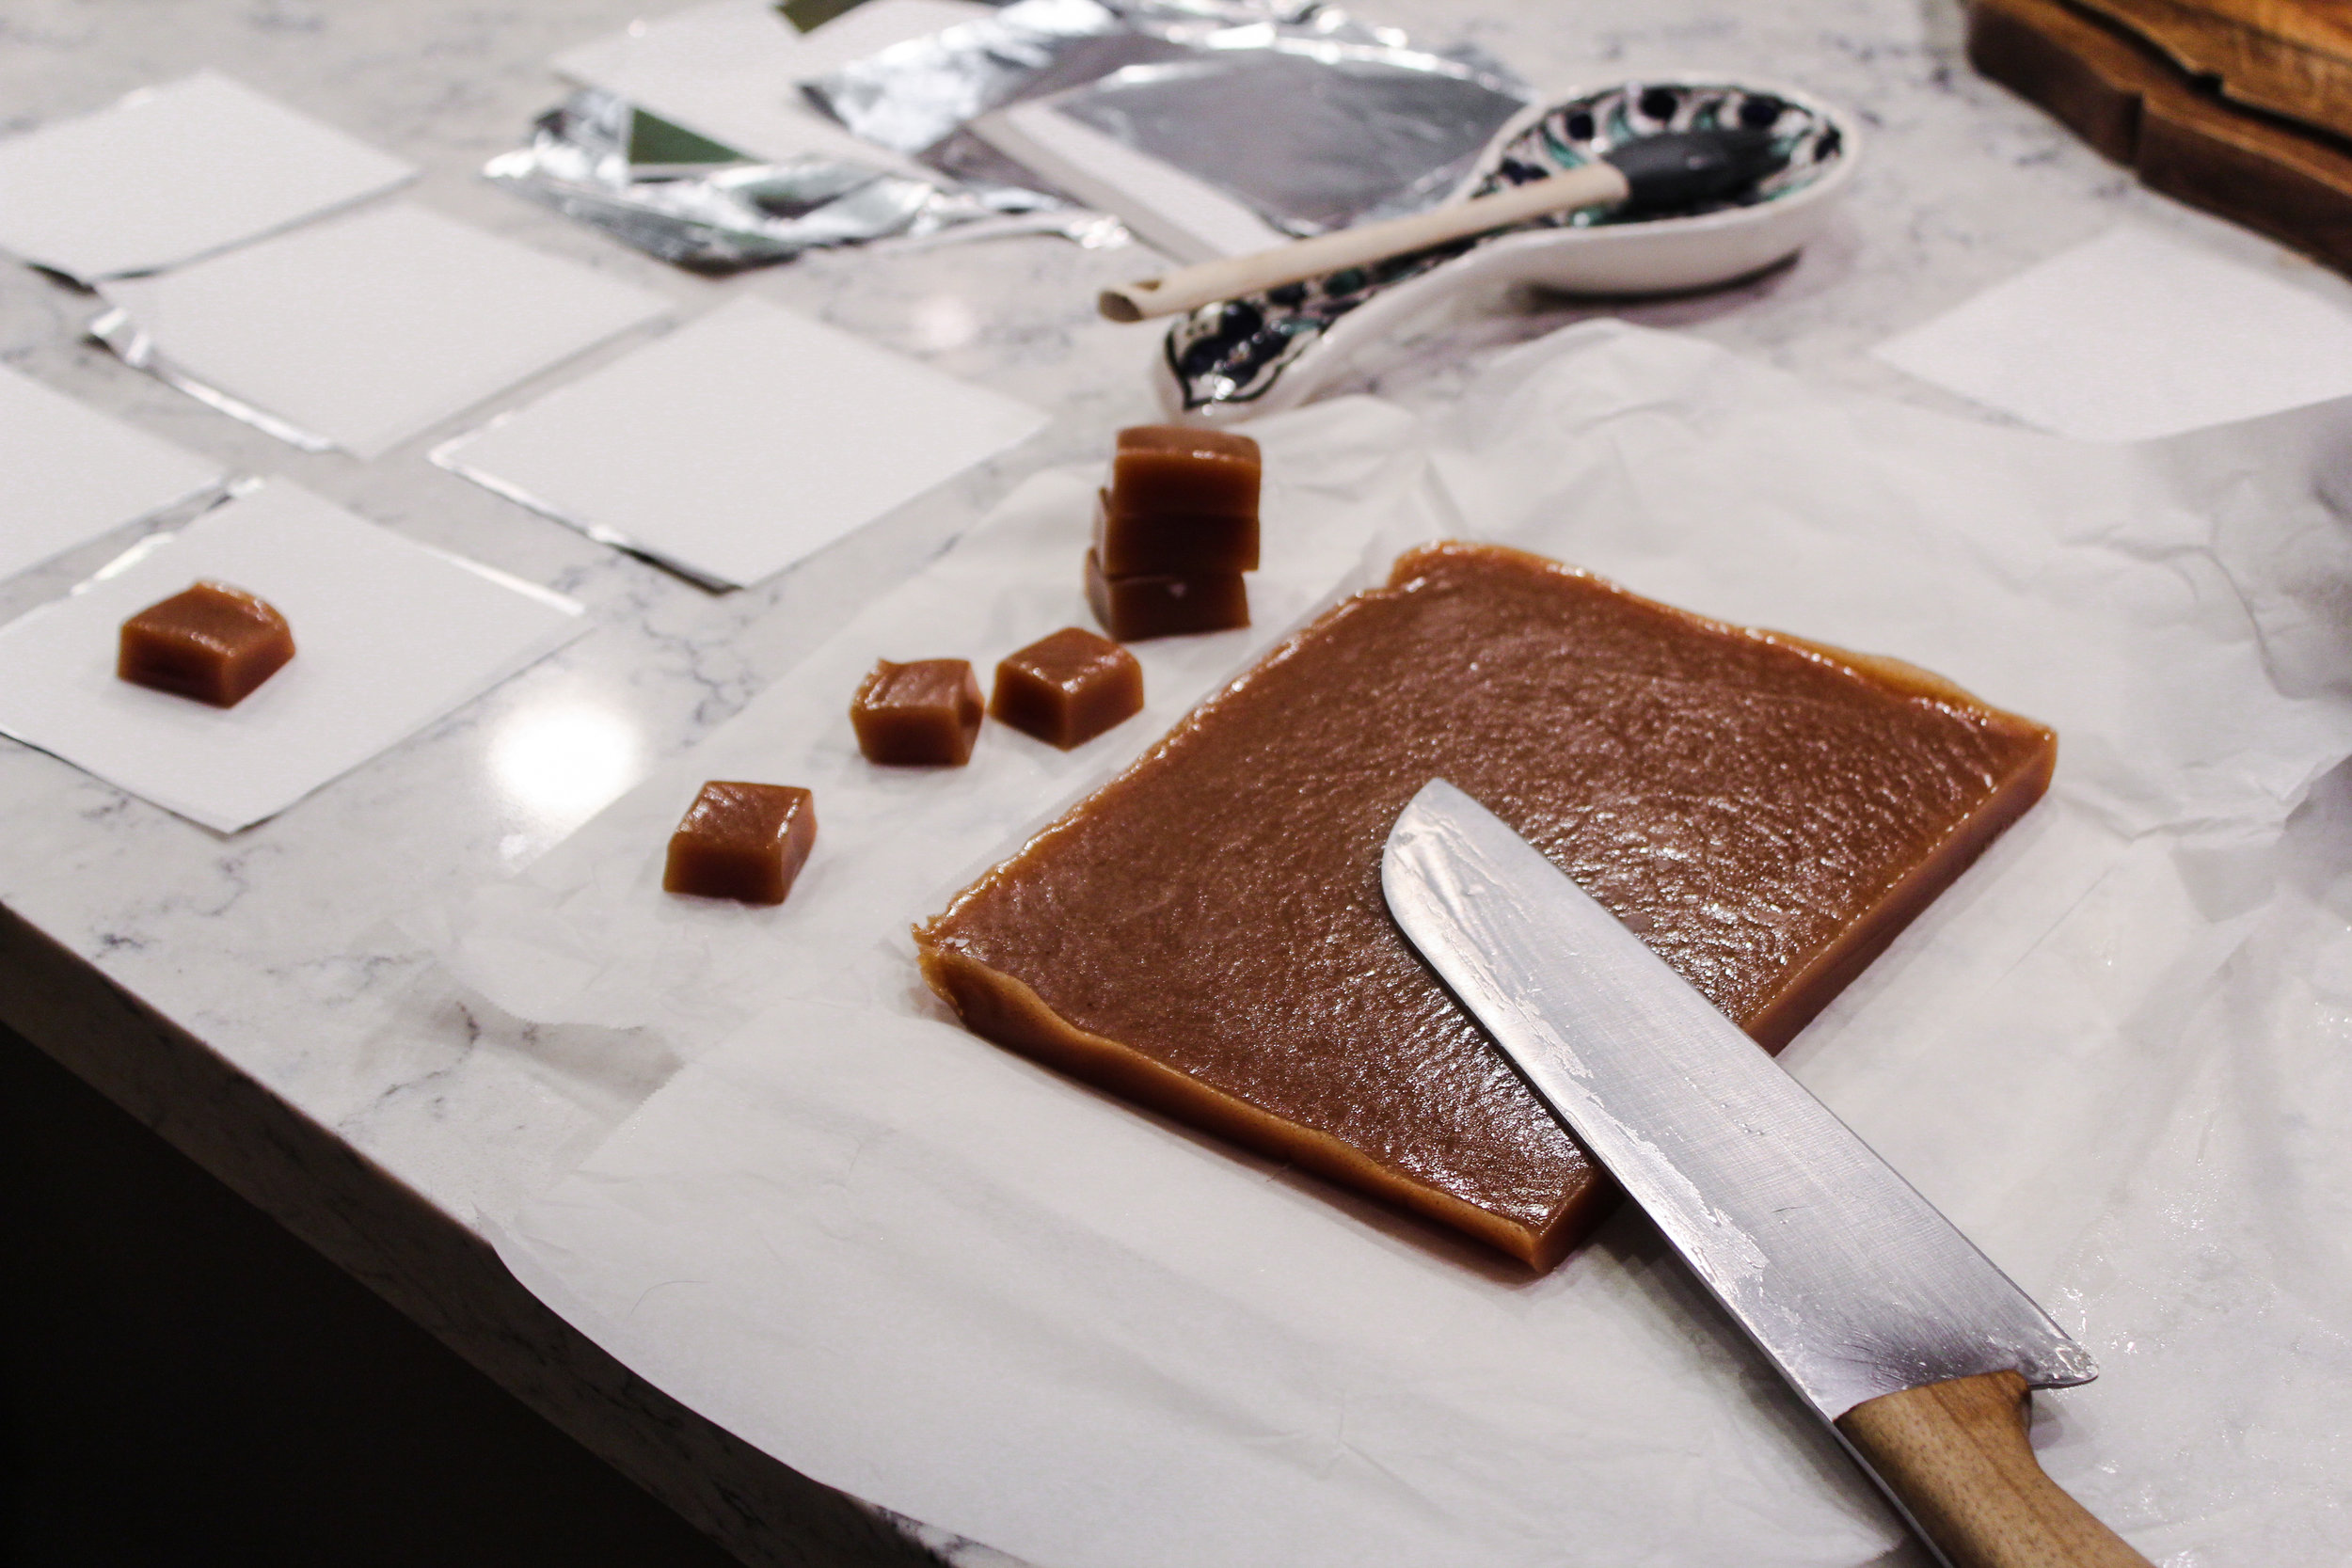 The perfect caramels took 6 years of testing, combining techniques, and experimenting.